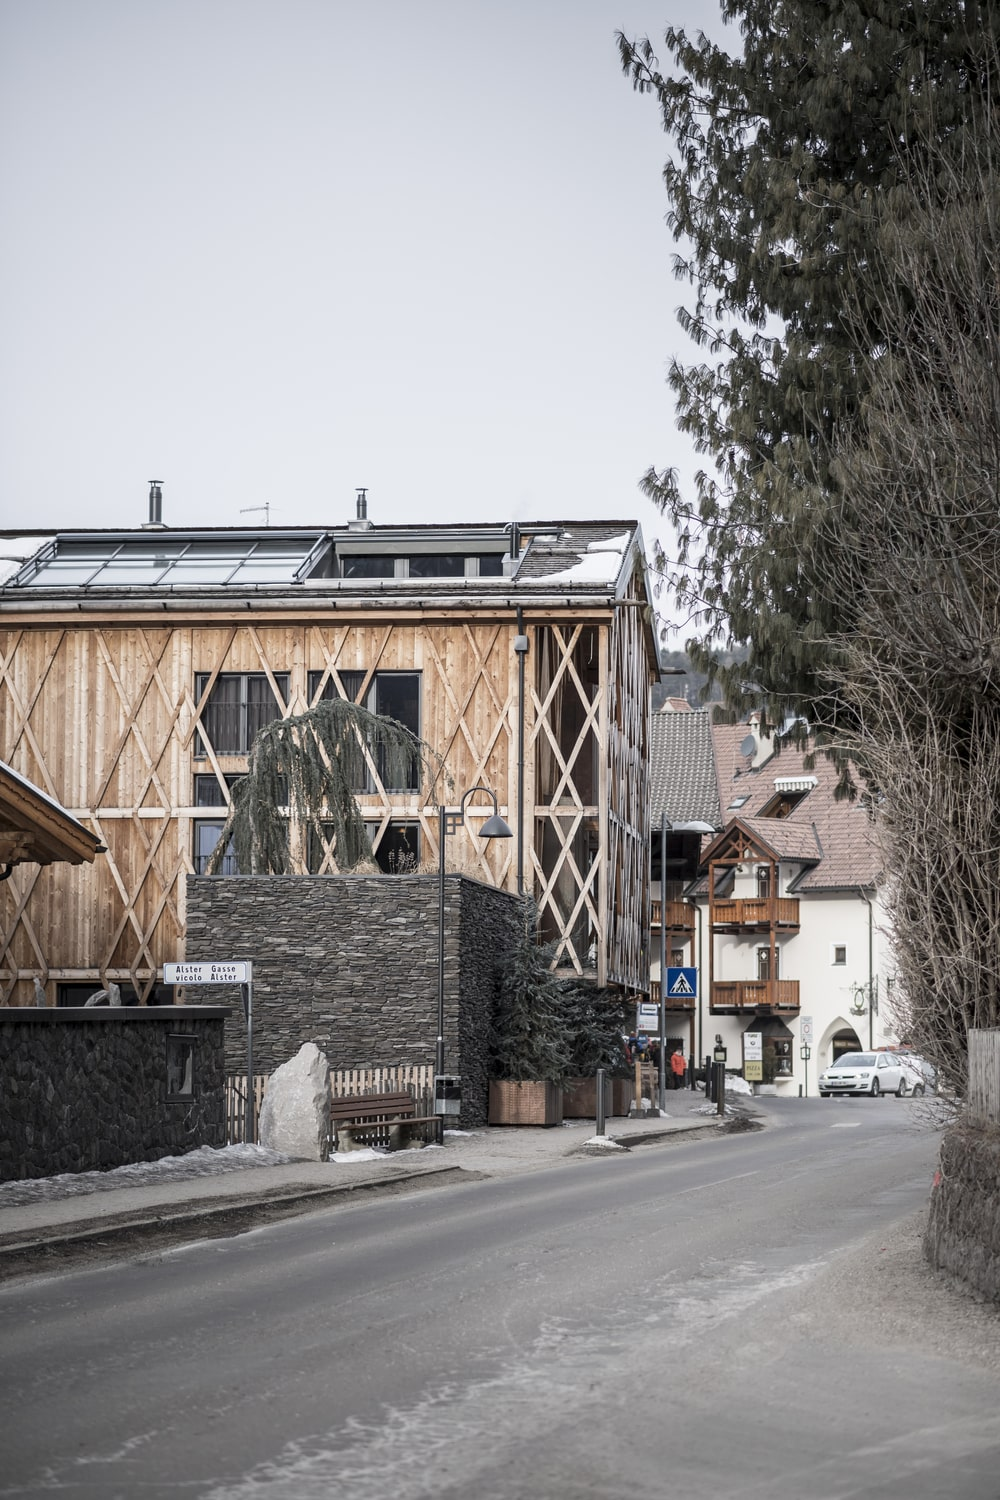 This is a street view of the house that has unique intricate patterns on its wooden exteriors.